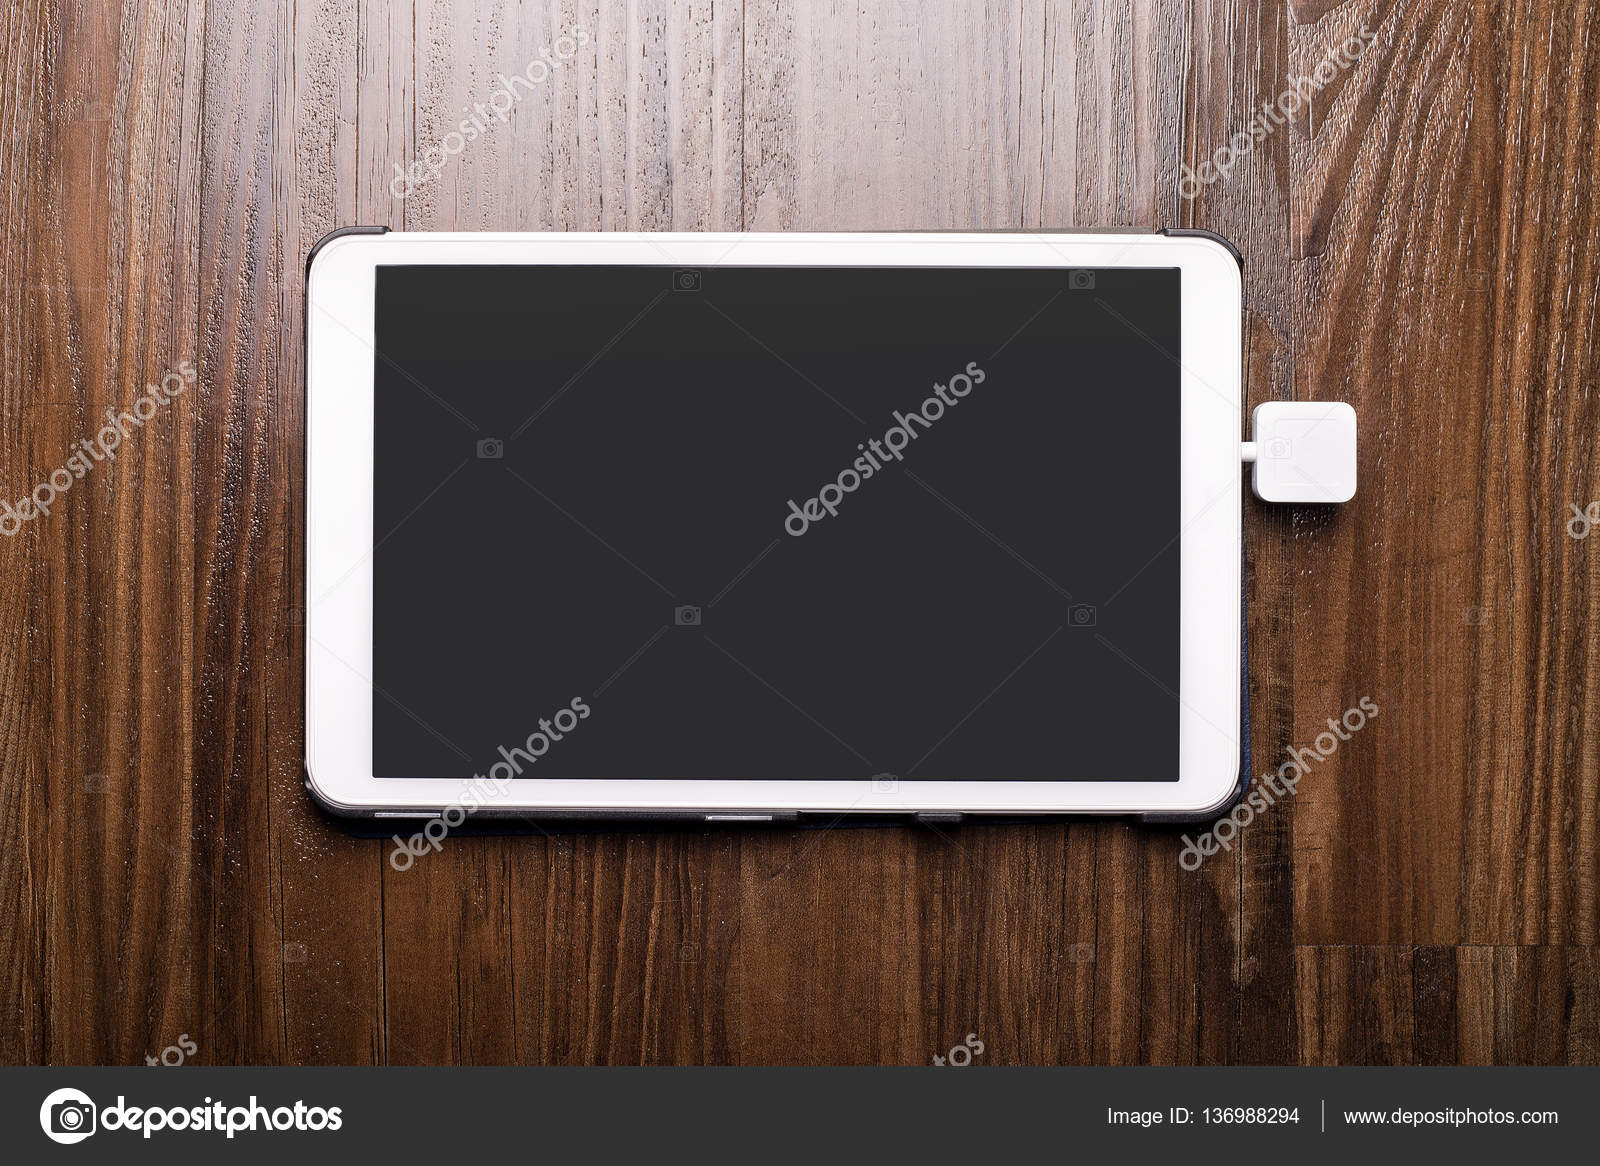 Credit card swipe or chip reader stock photo innovatedcaptures credit card payment on a swipe or chip reader app on a tablet used by small or online businesses the electronic device is used as a modern cash register or colourmoves